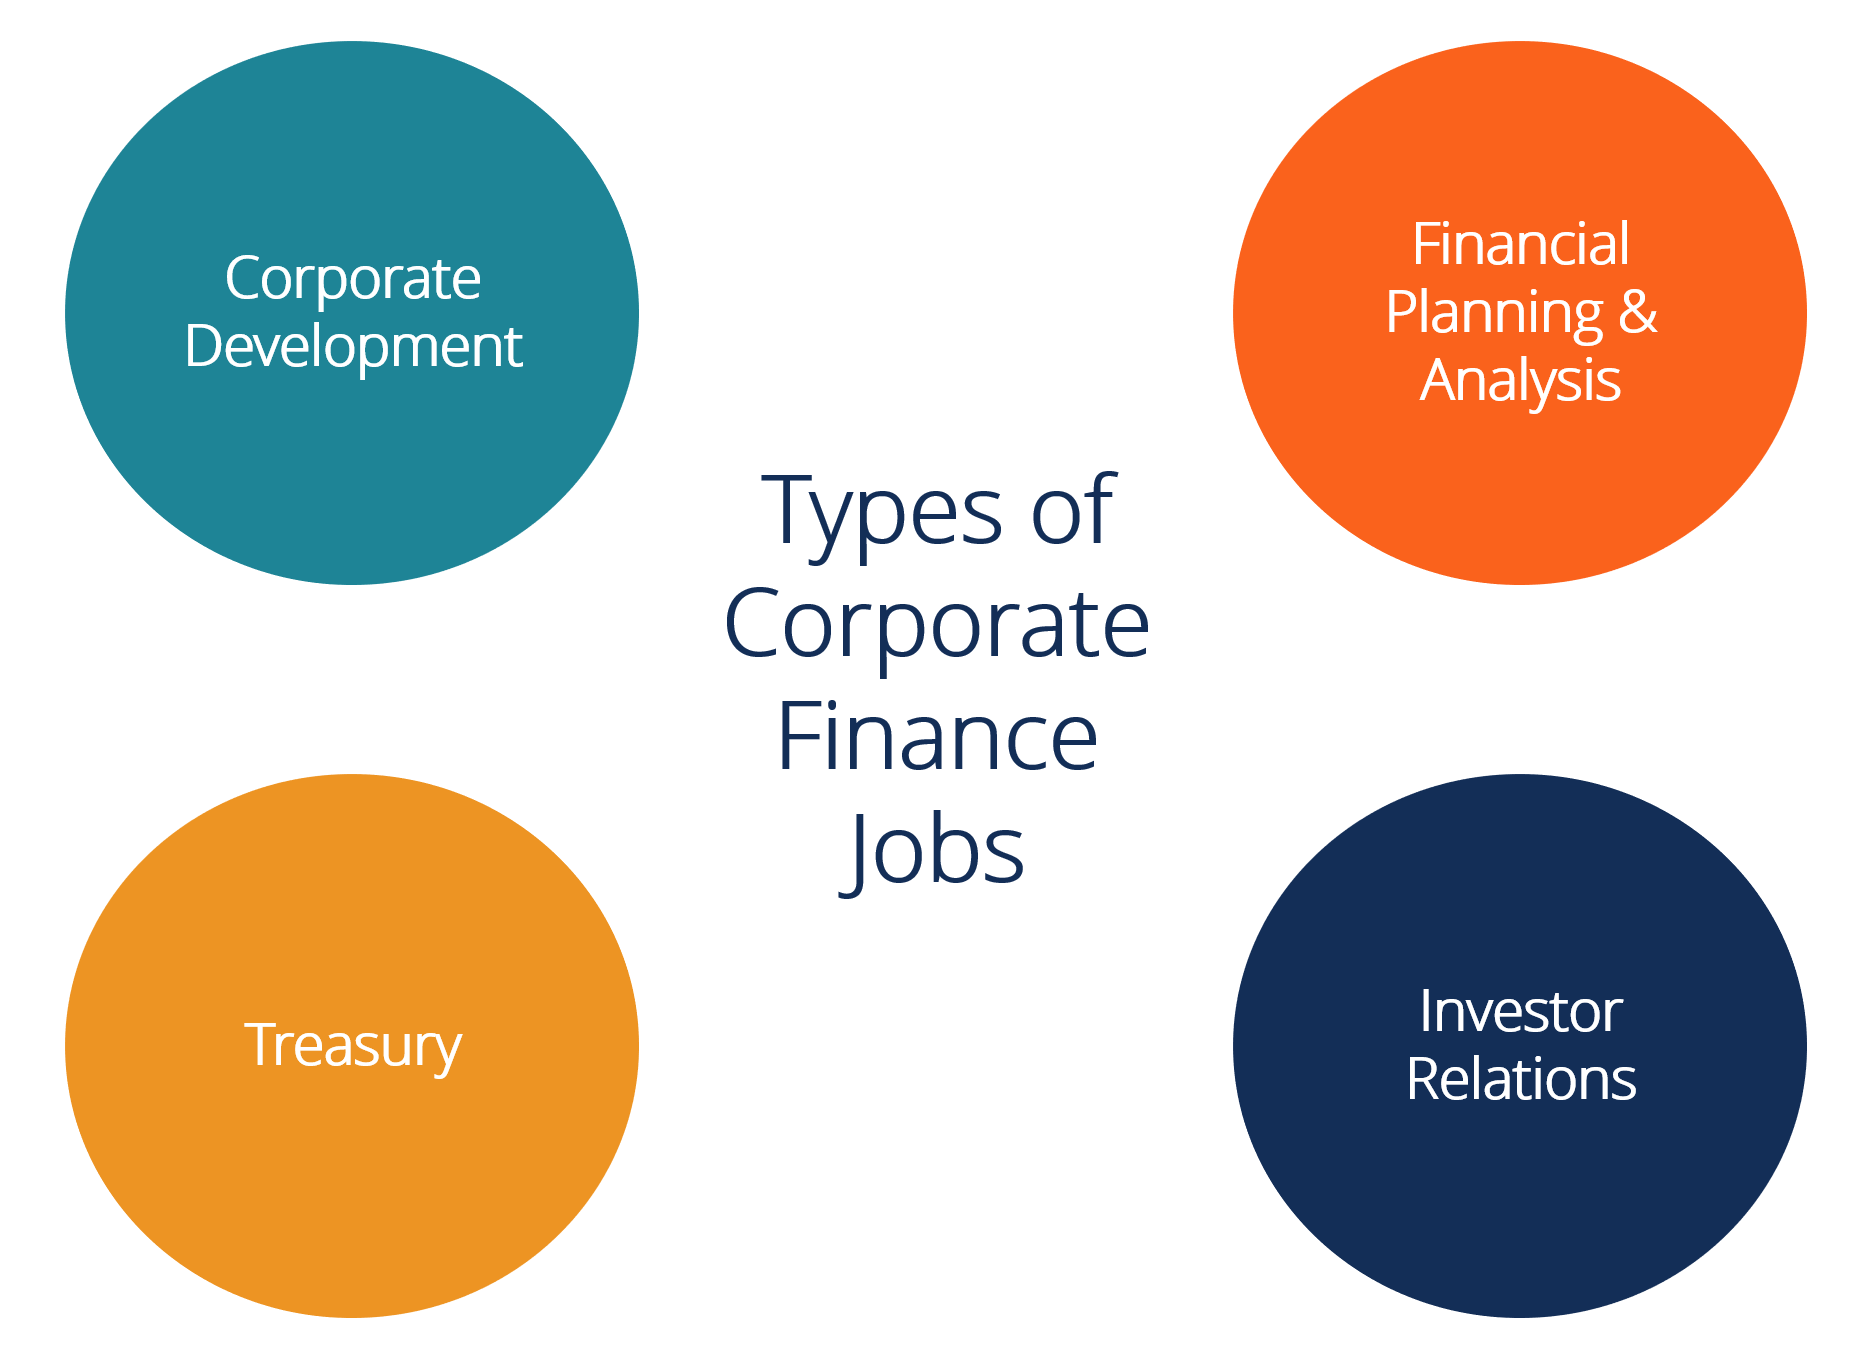 Best Types of Corporate Finance Jobs - Diagram